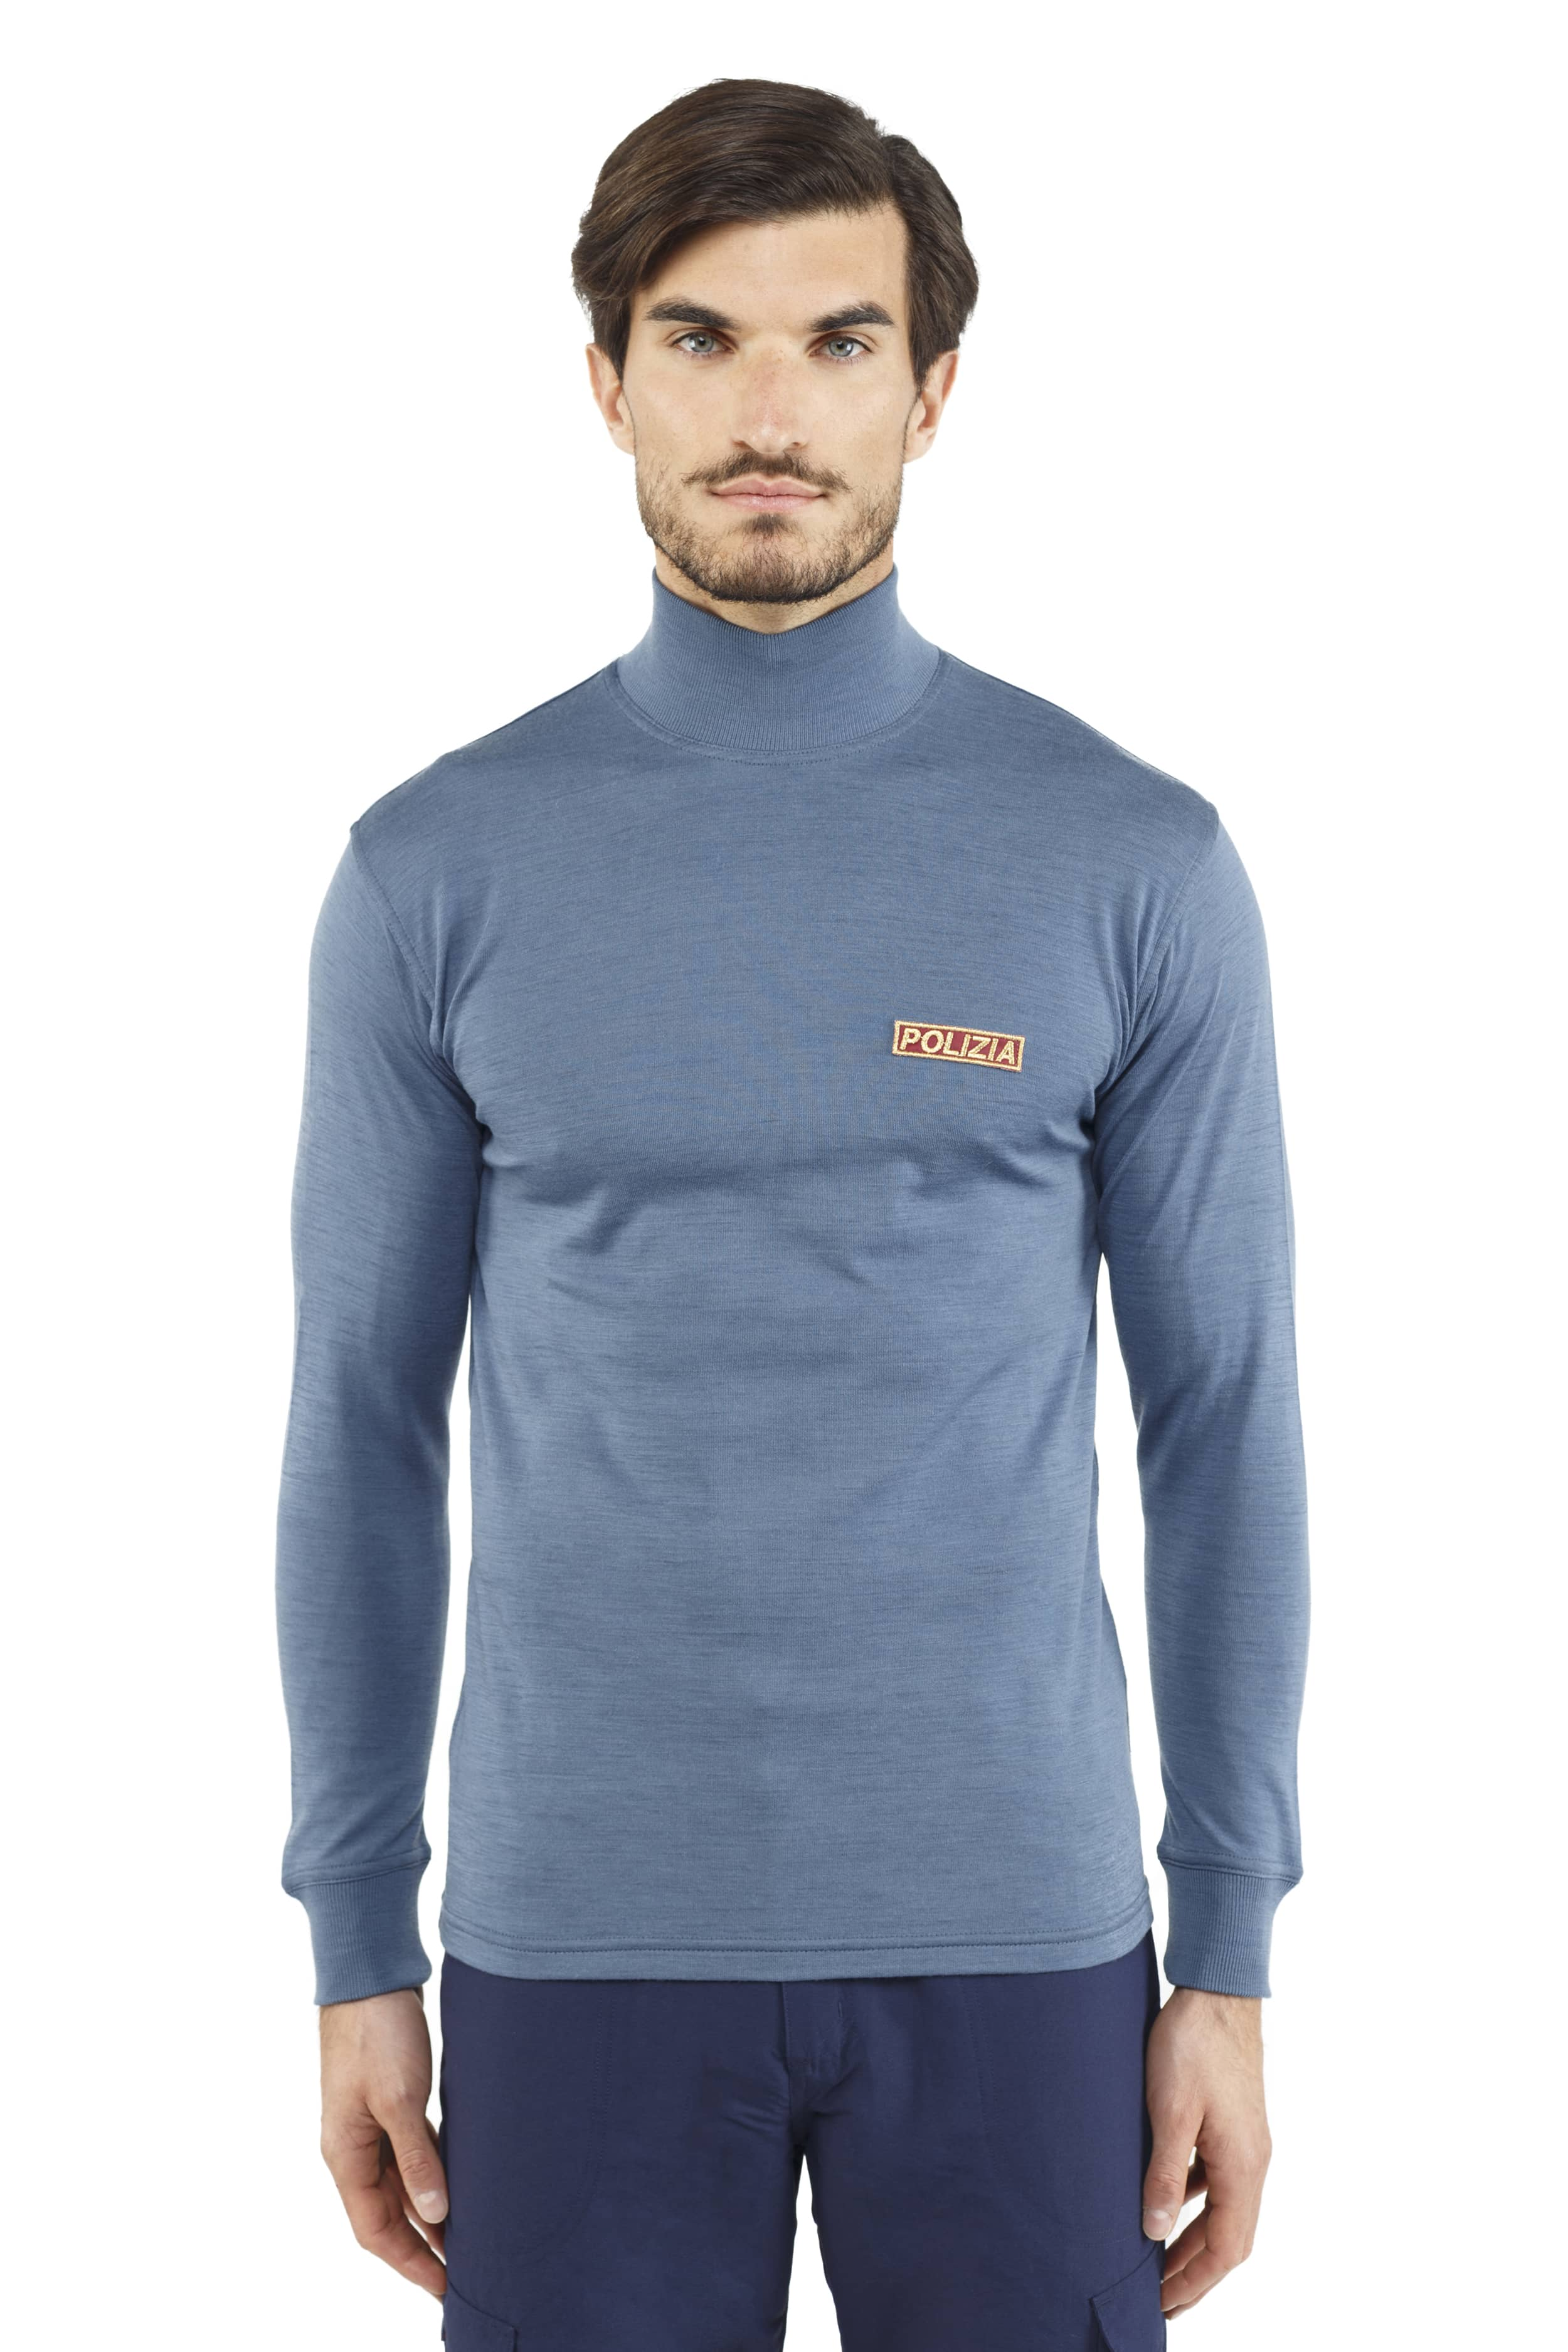 POLICE WARM MOCK-NECK SWEATER